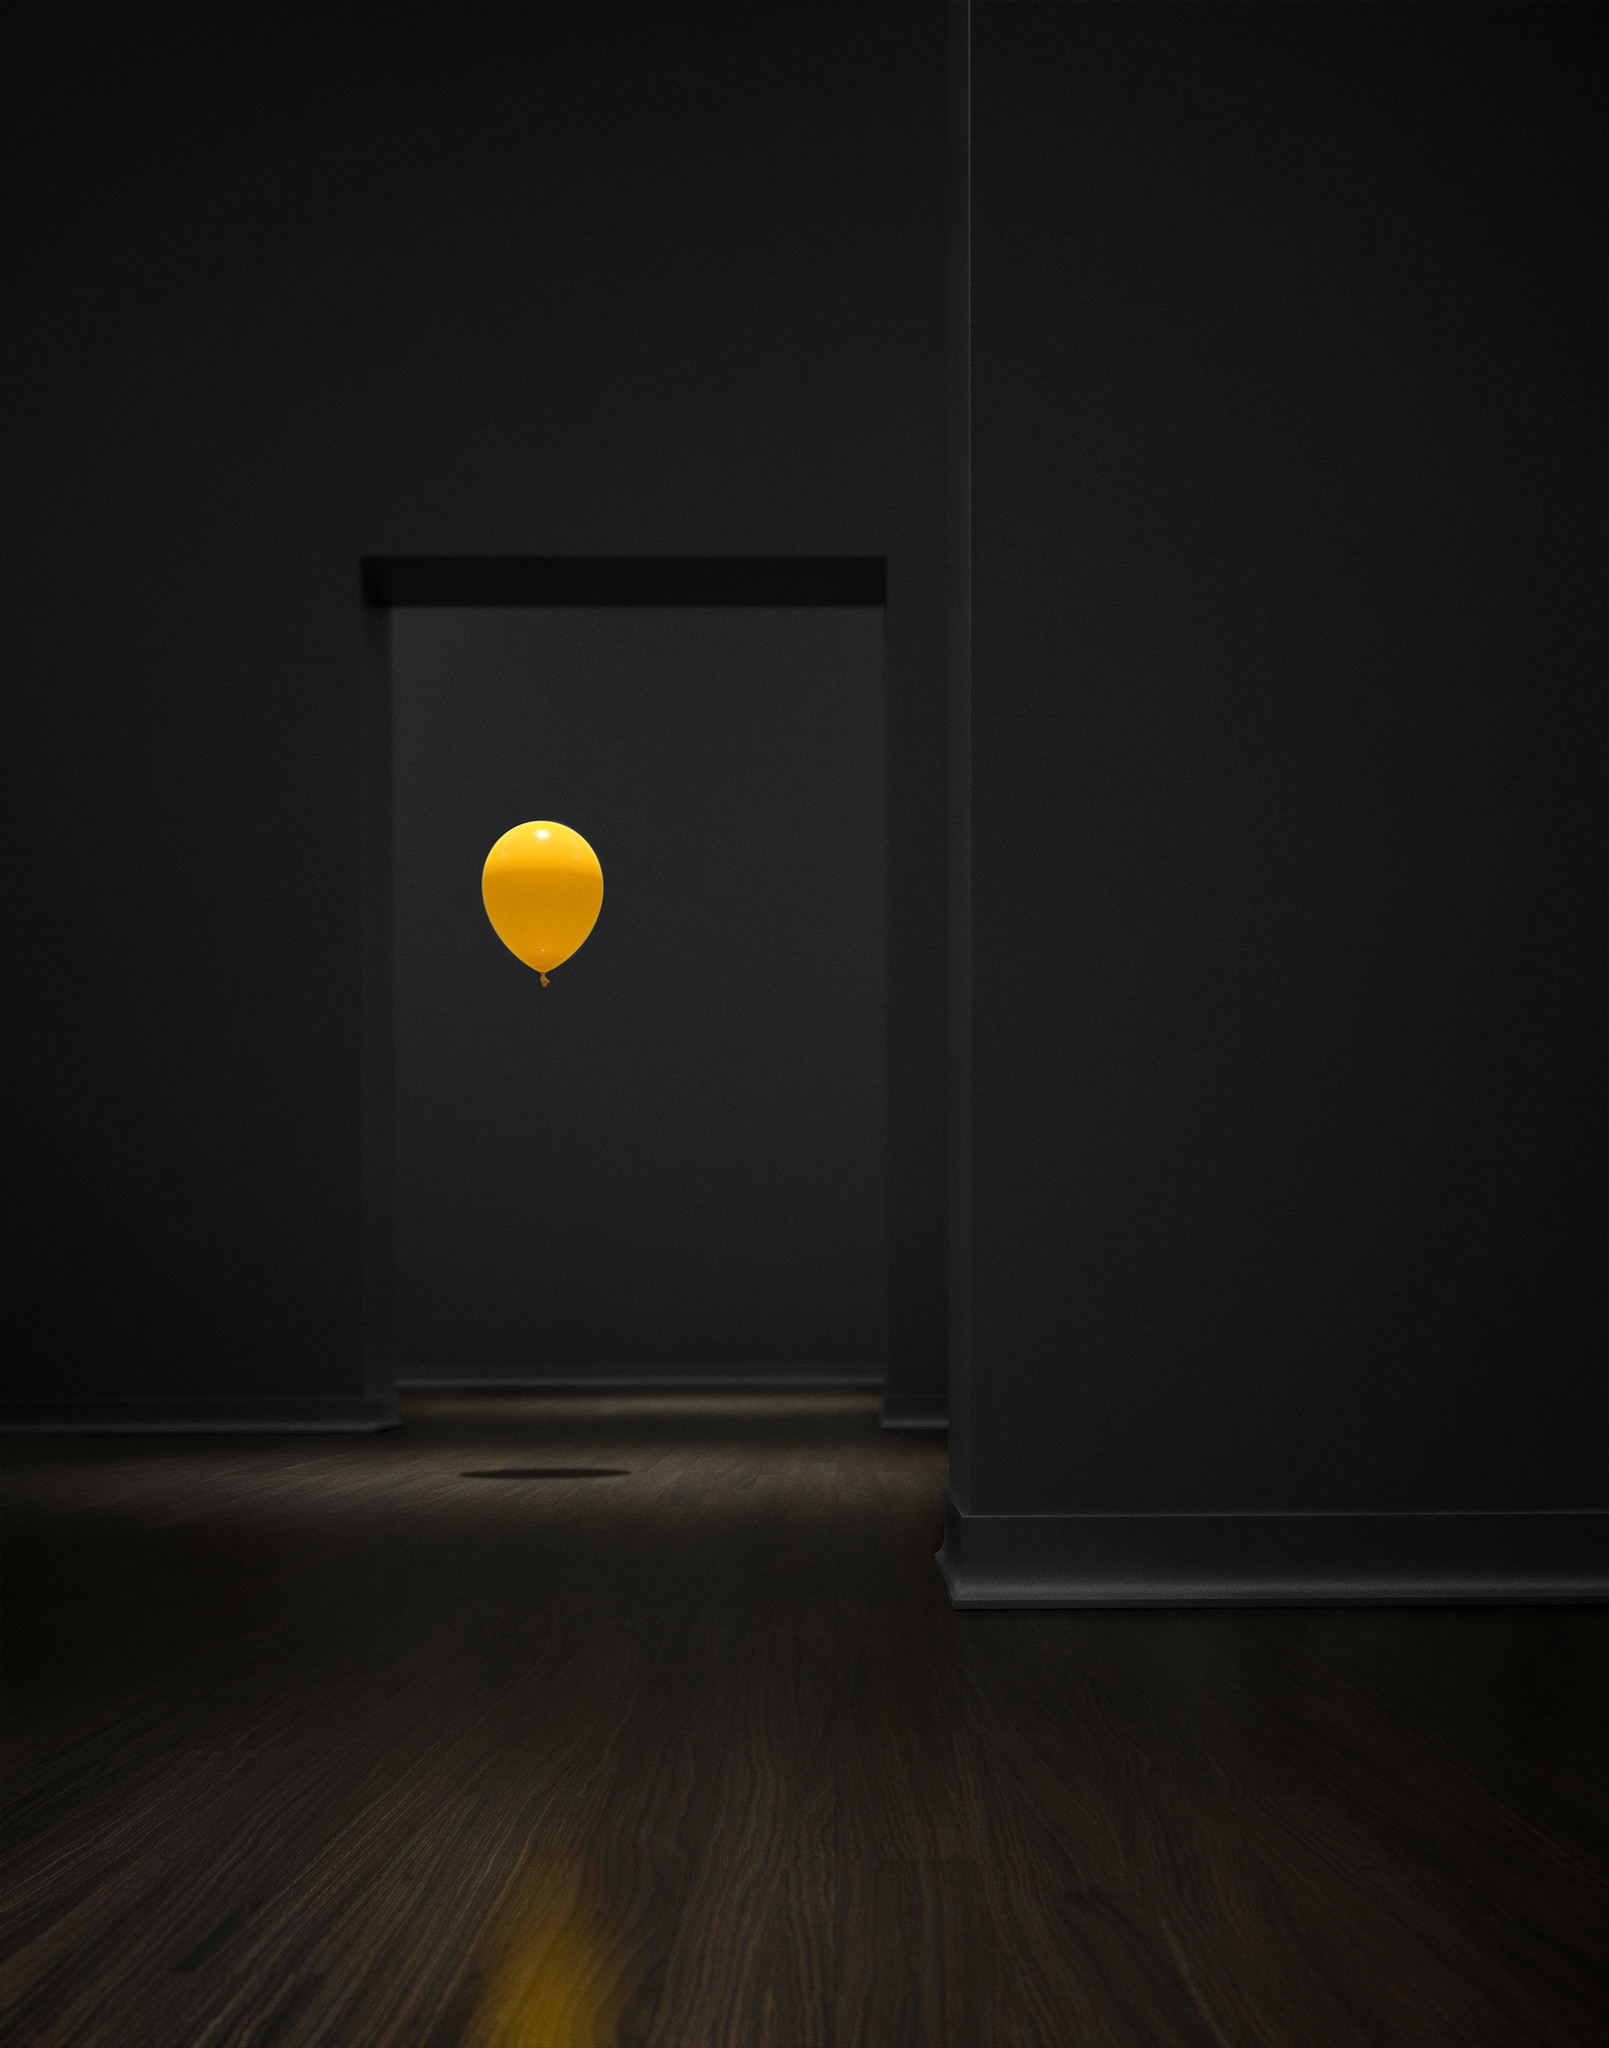 055Art_Gallery_Balloon.jpg